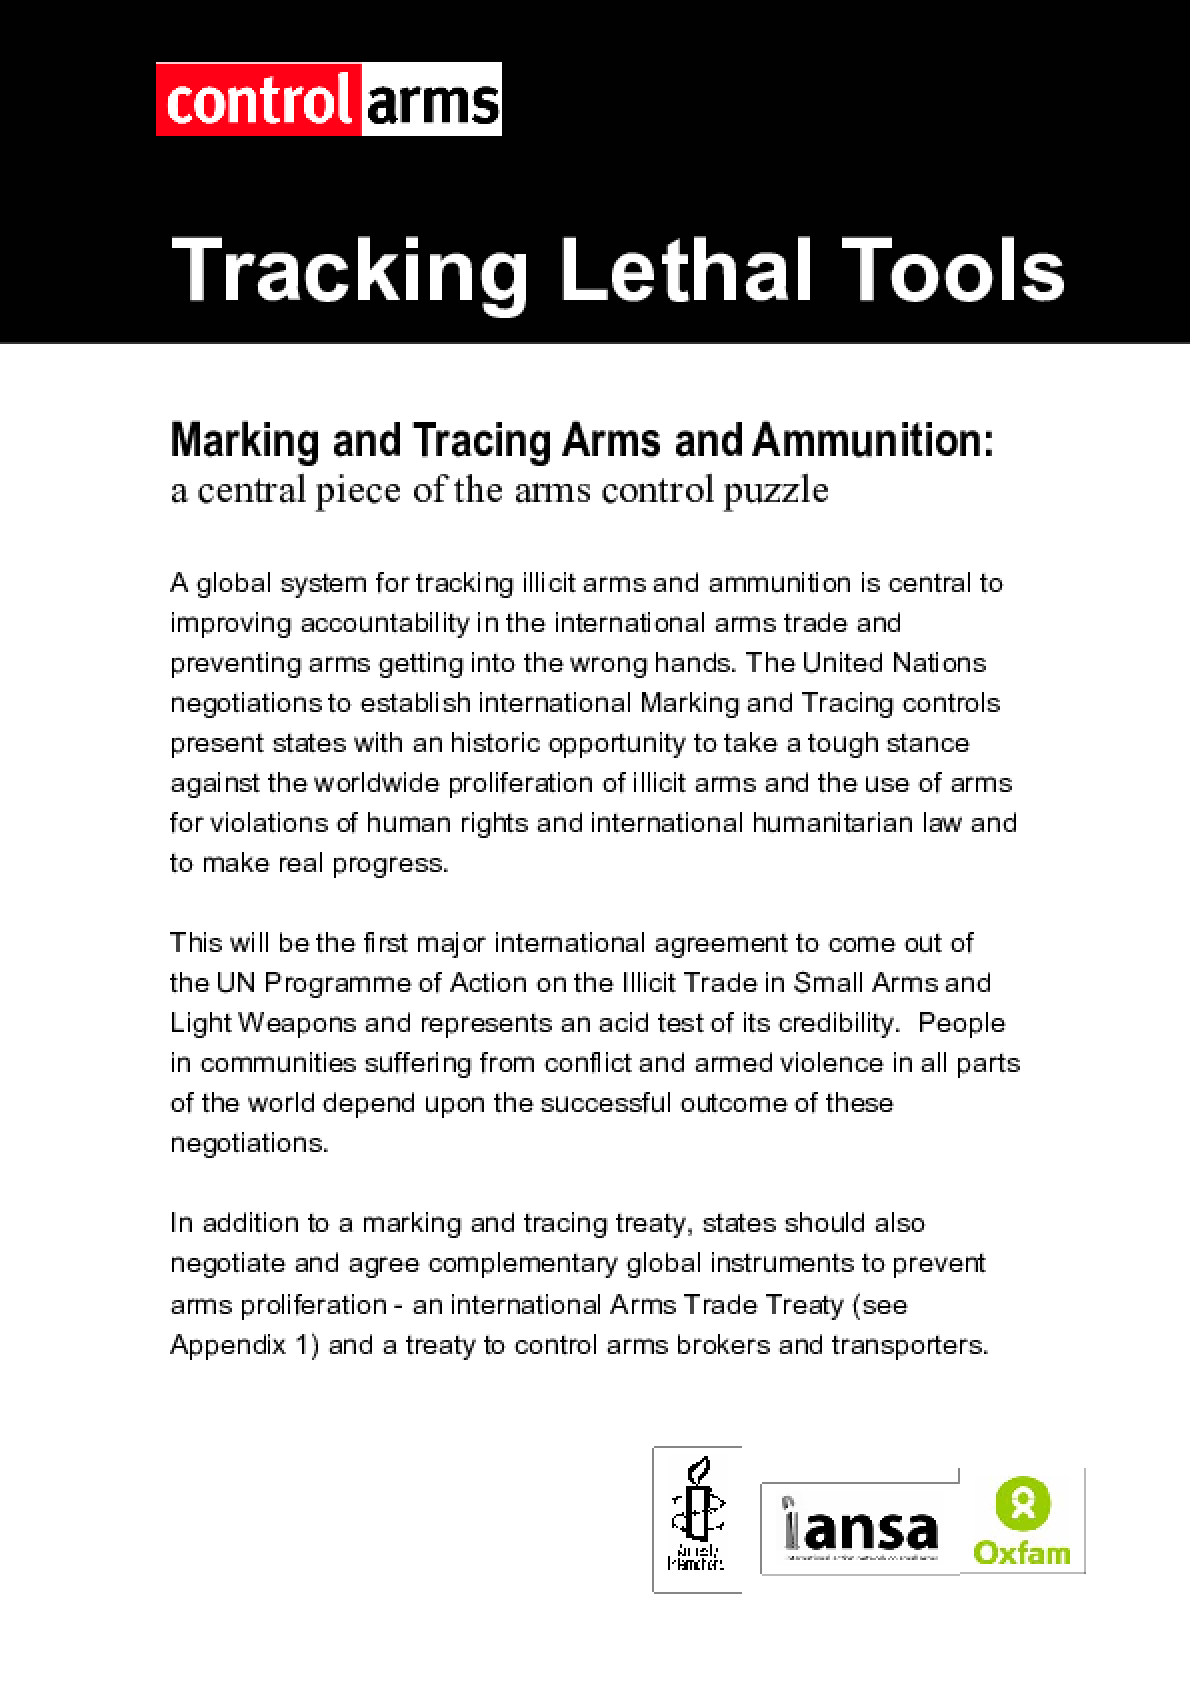 Tracking Lethal Tools: Marking and tracing arms and ammunition: A central piece of the arms control puzzle